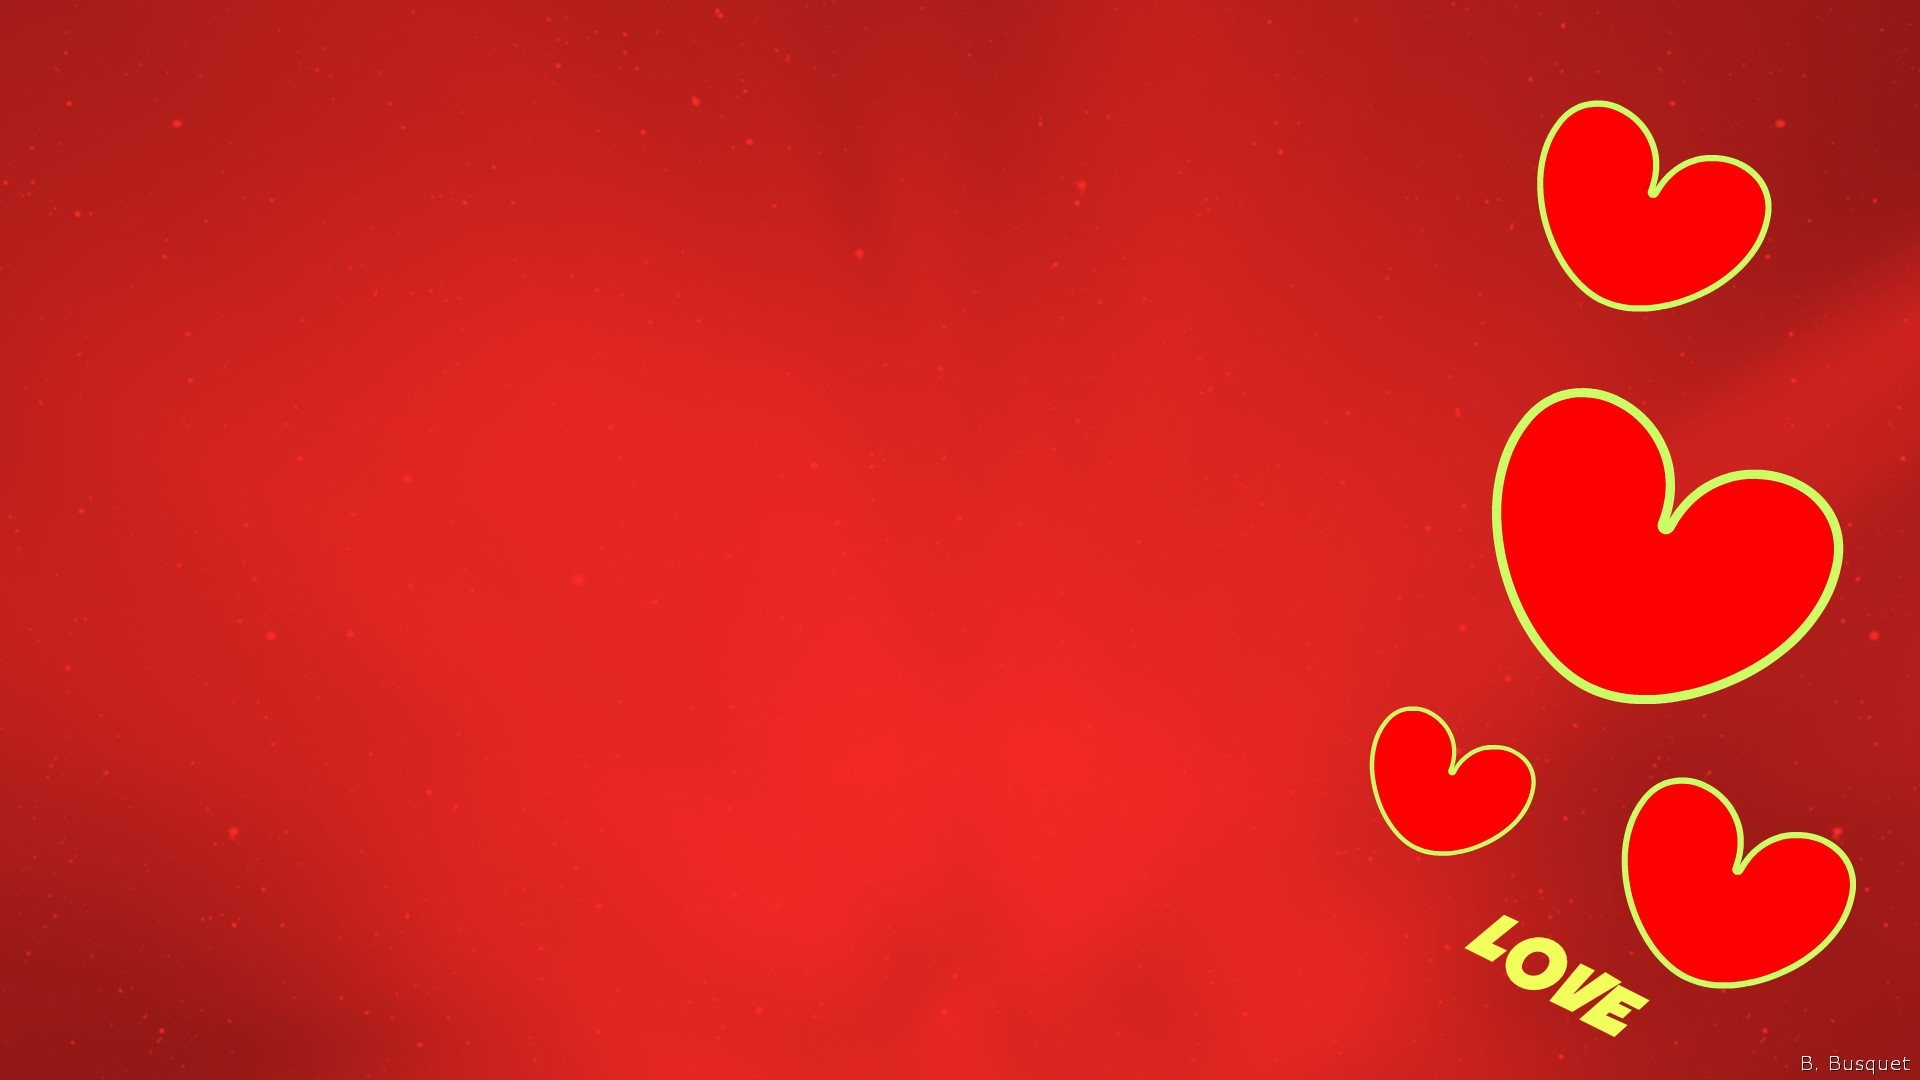 Red Love Wallpaper Hd : HD Love Wallpapers - Barbaras HD Wallpapers